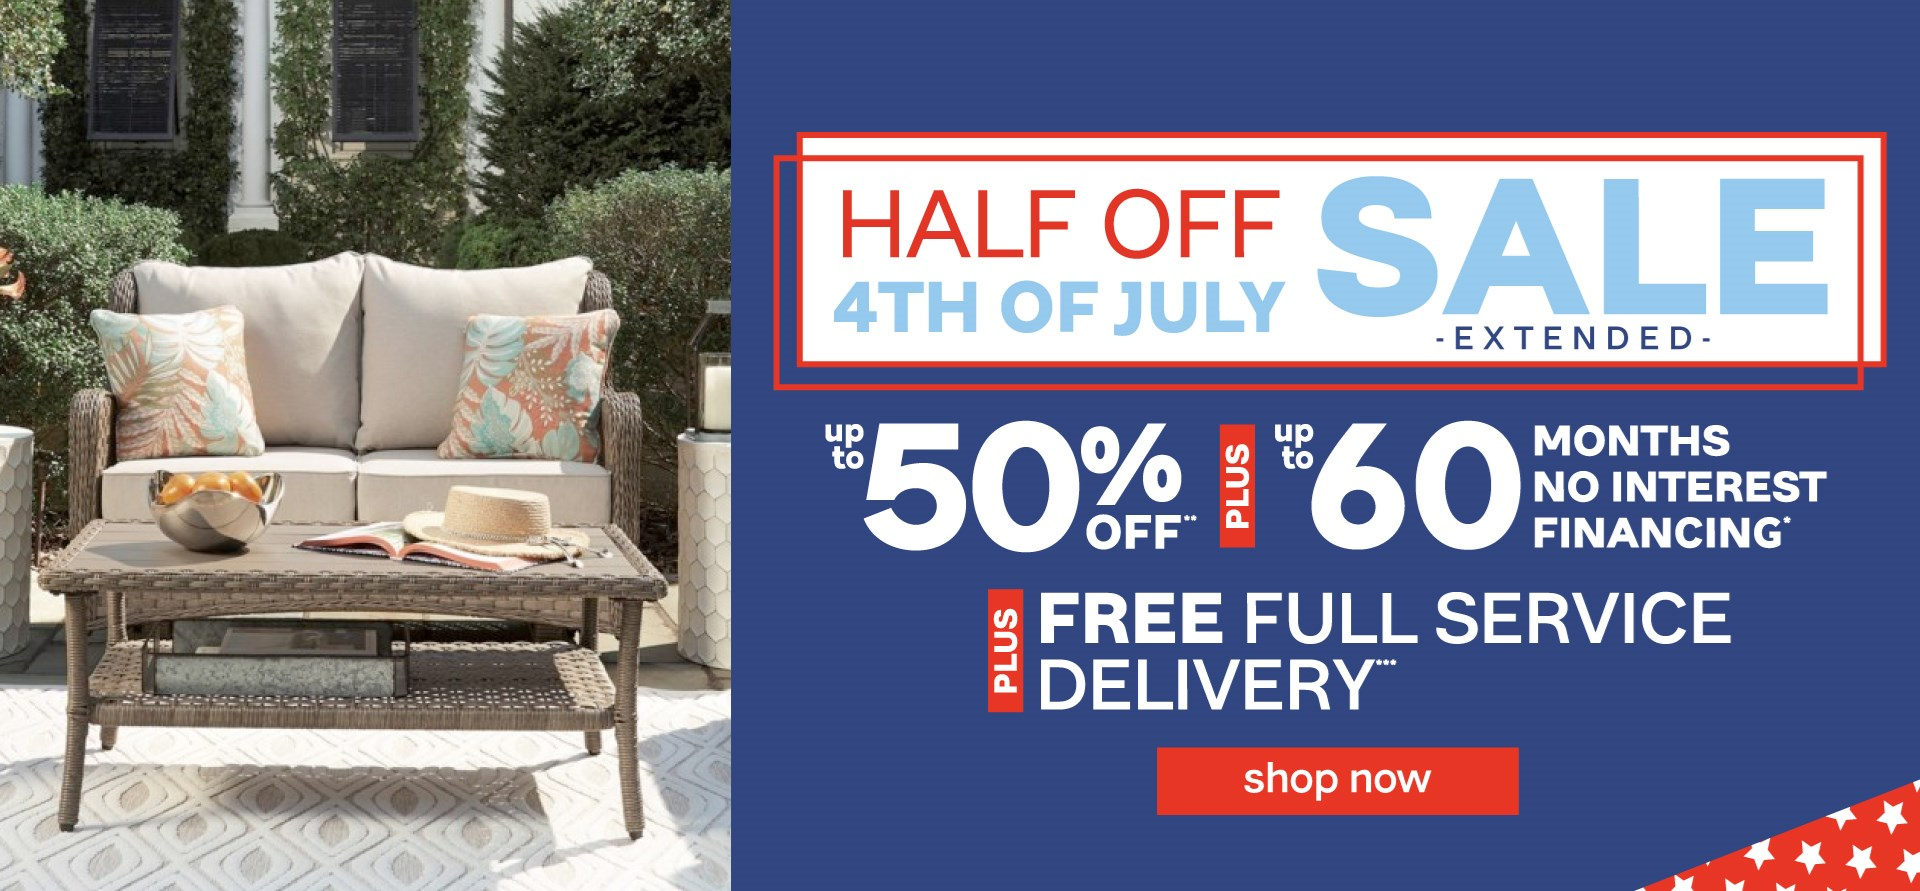 Half off 4th of July Sale Extended